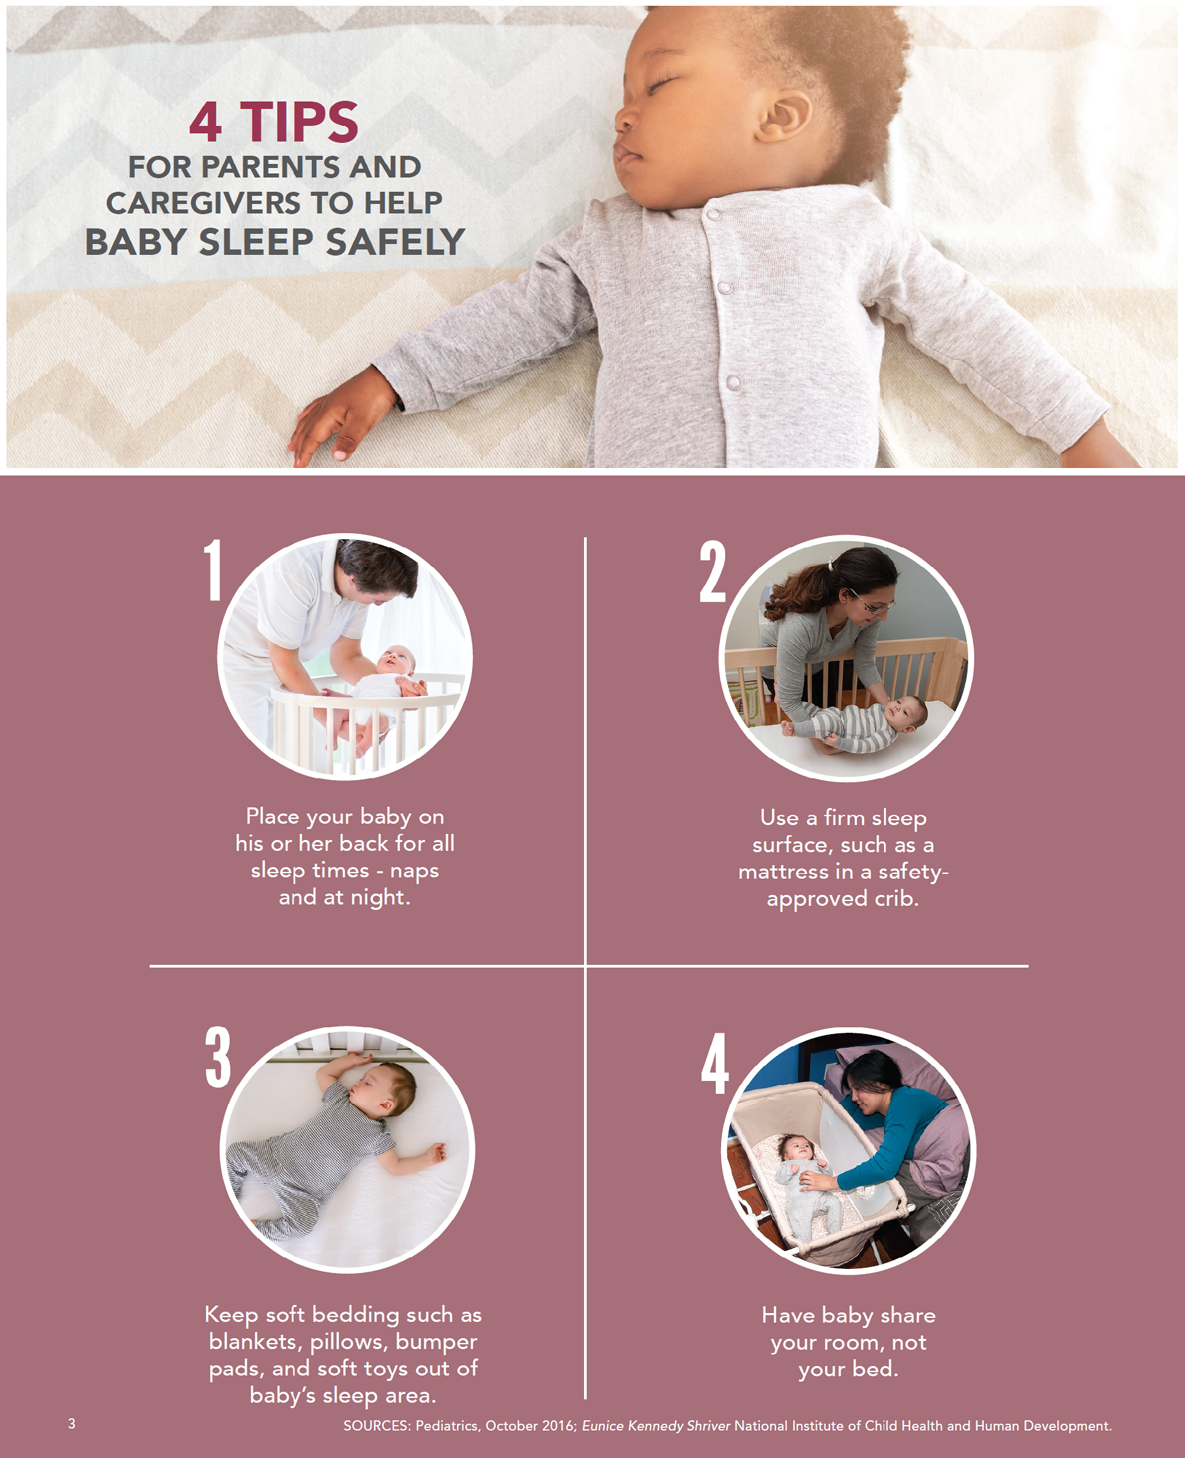 Graphic 4 tips for parents and caregivers to help baby sleep safely